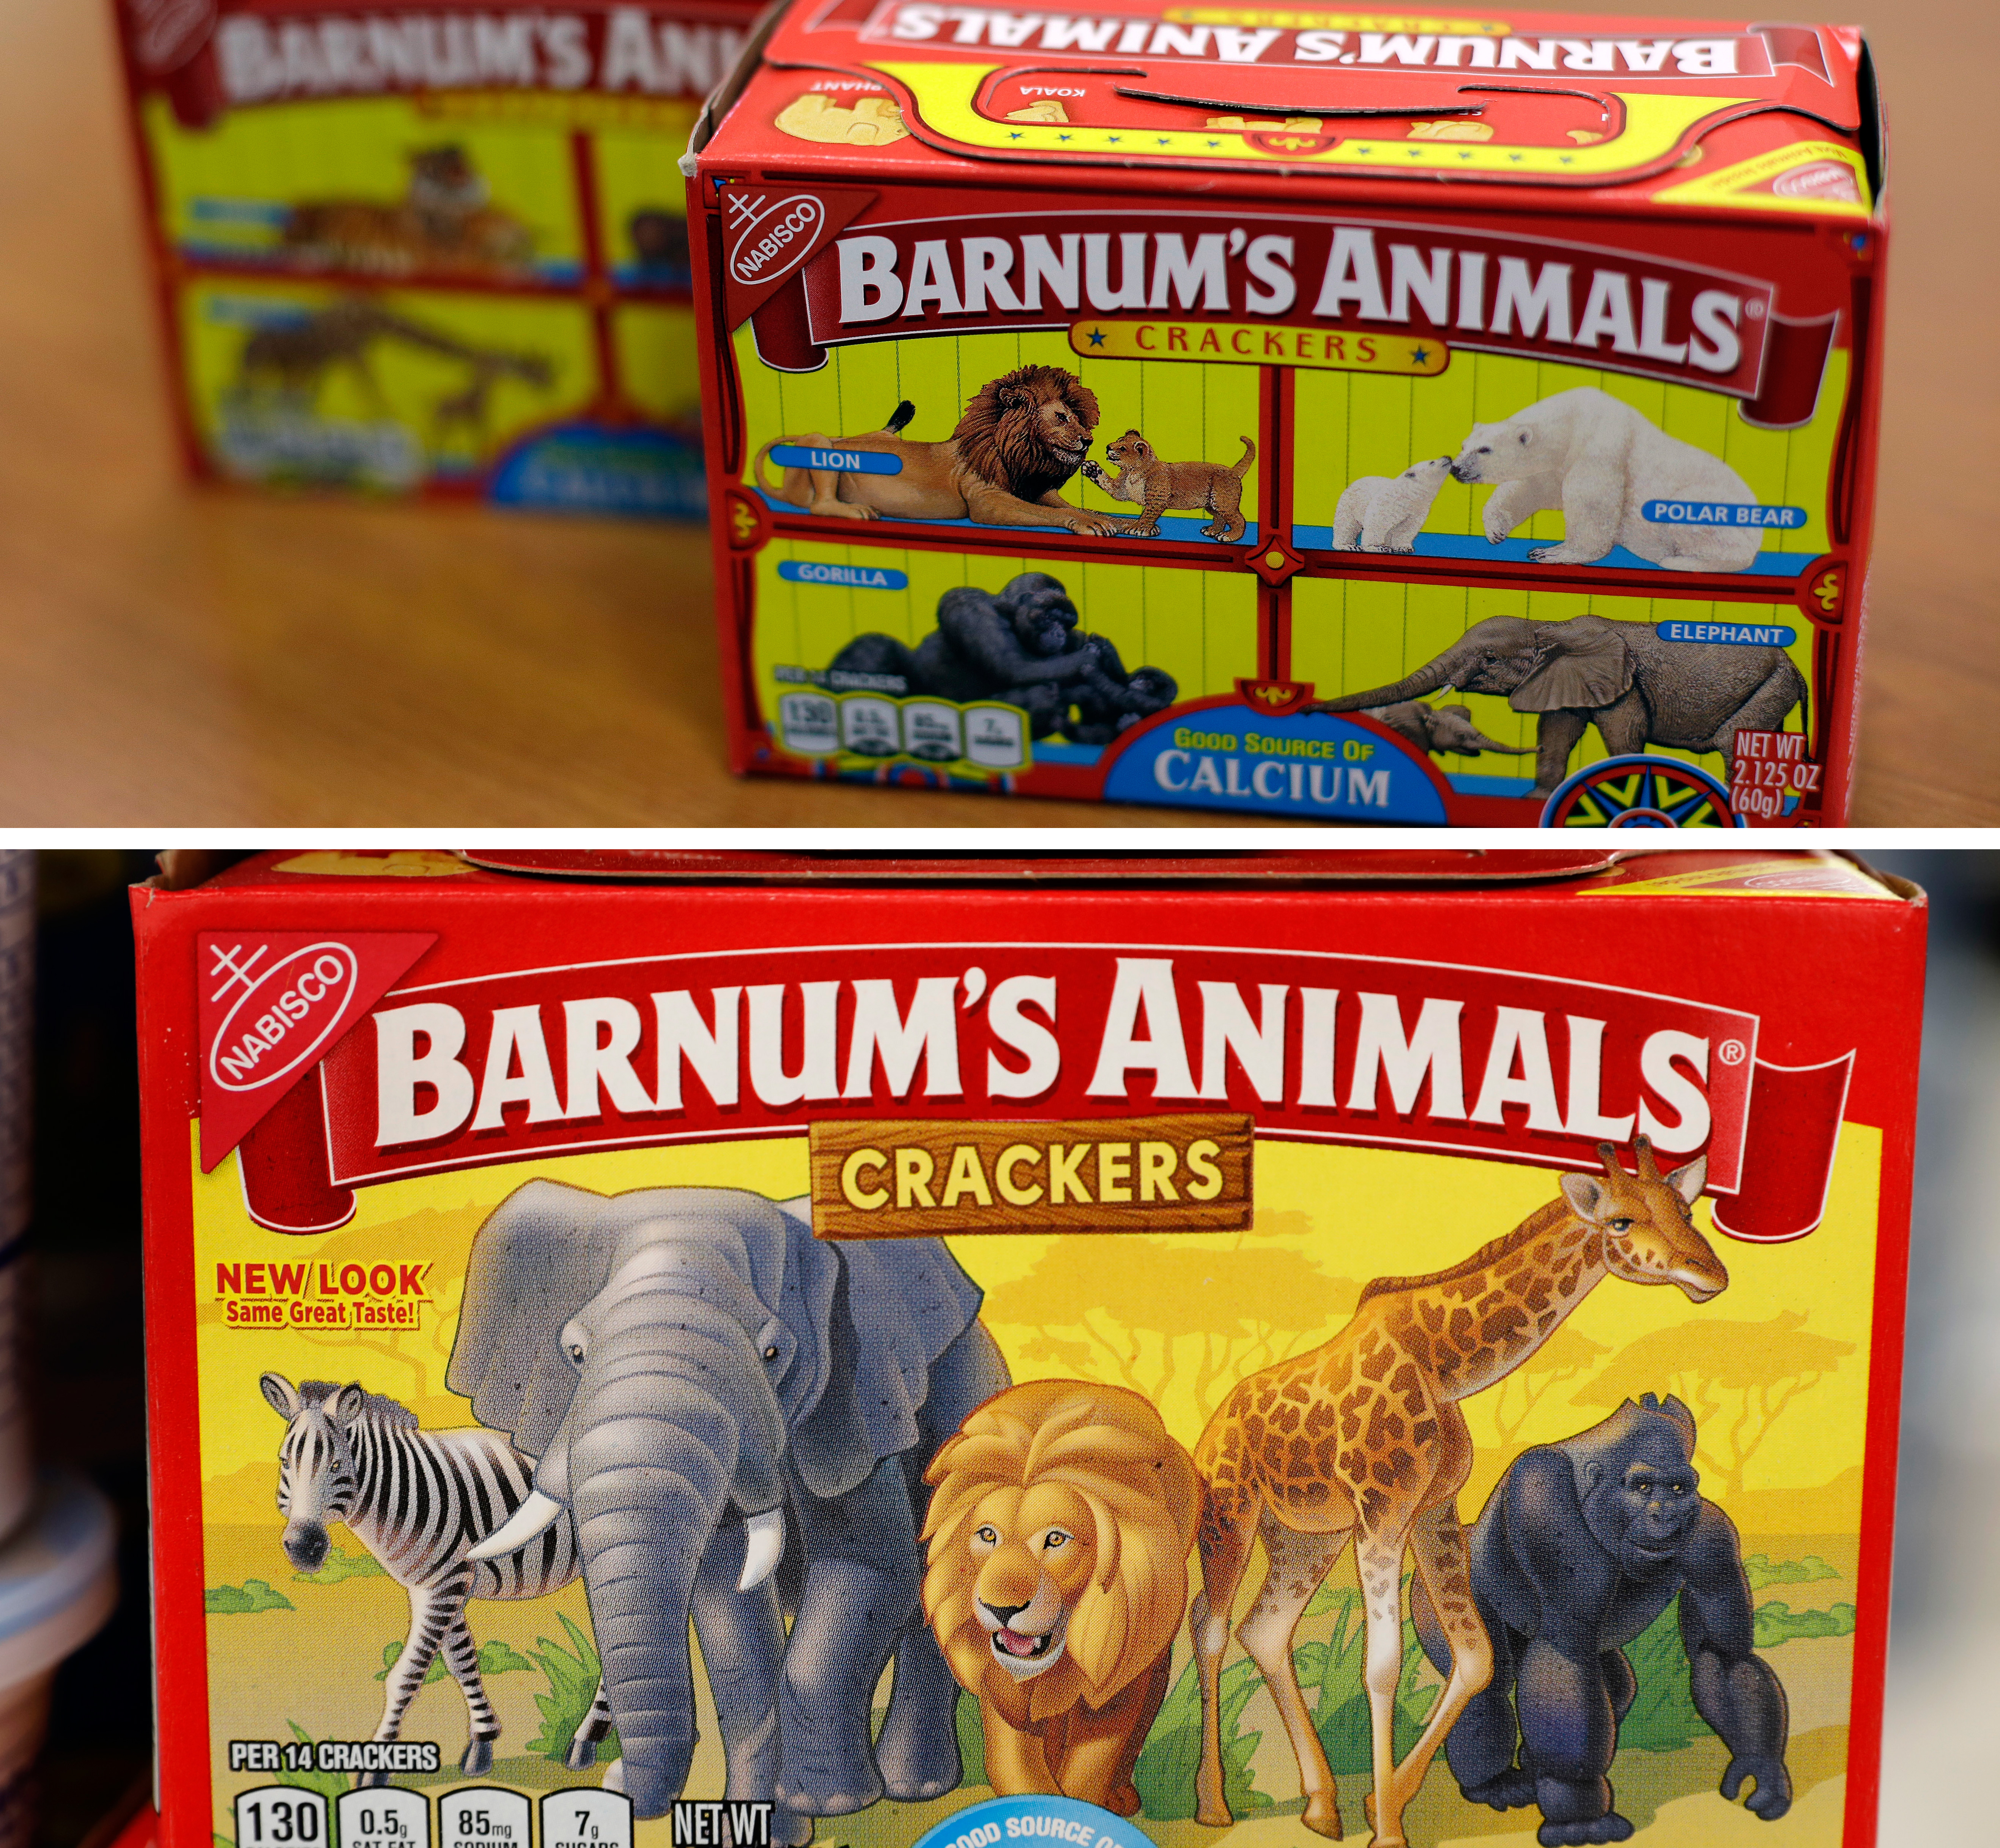 Animal cracker boxes will no longer feature cages